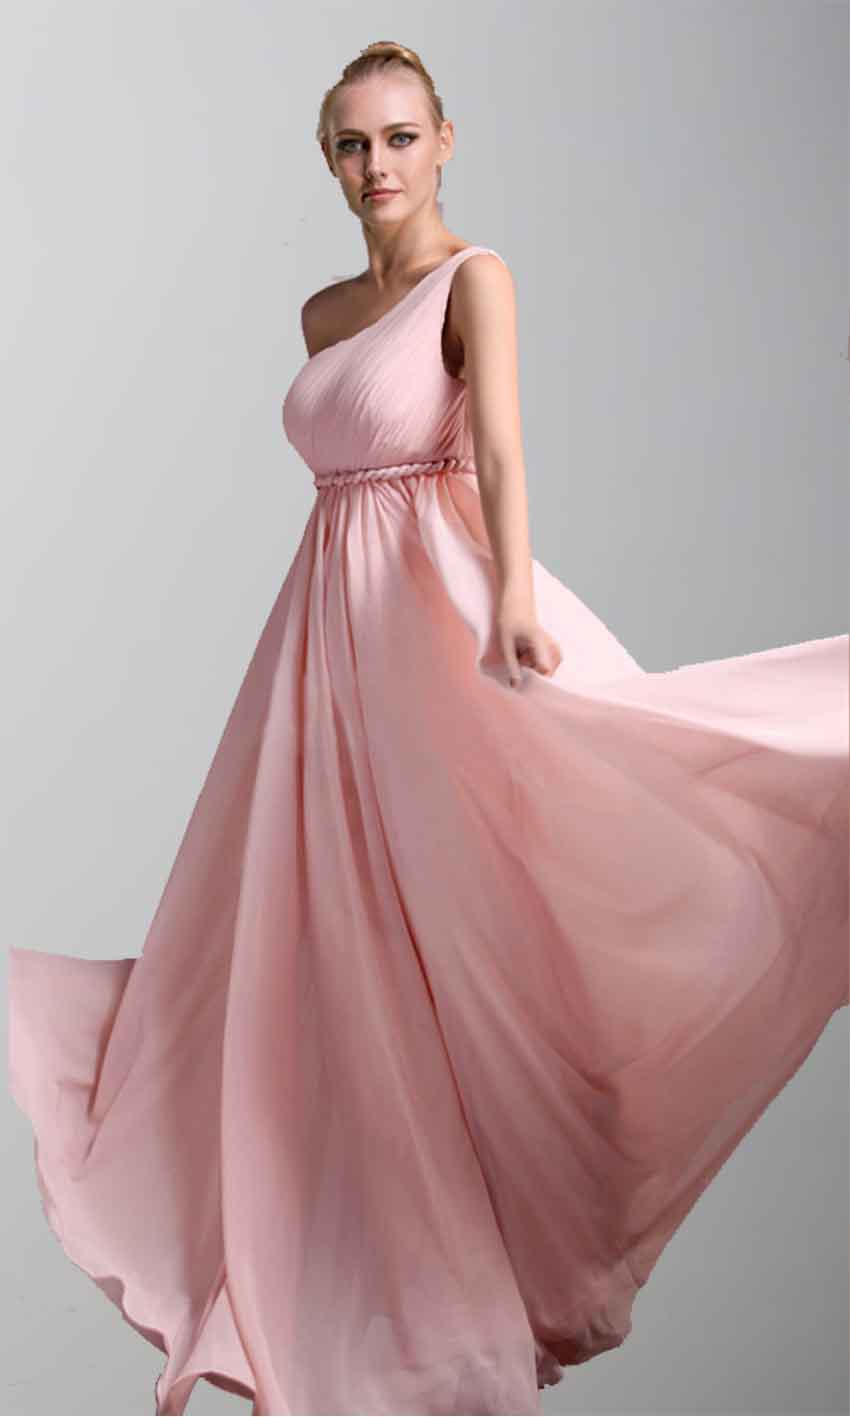 One Shoulder Braided Belt Long Bridesmaid Dress Pregnant KSP042 [KSP042] - £85.00 : Cheap Prom Dresses Uk, Bridesmaid Dresses, 2014 Prom & Evening Dresses, Look for cheap elegant prom dresses 2014, cocktail gowns, or dresses for special occasions? kissprom.co.uk offers various bridesmaid dresses, evening dress, free shipping to UK etc.